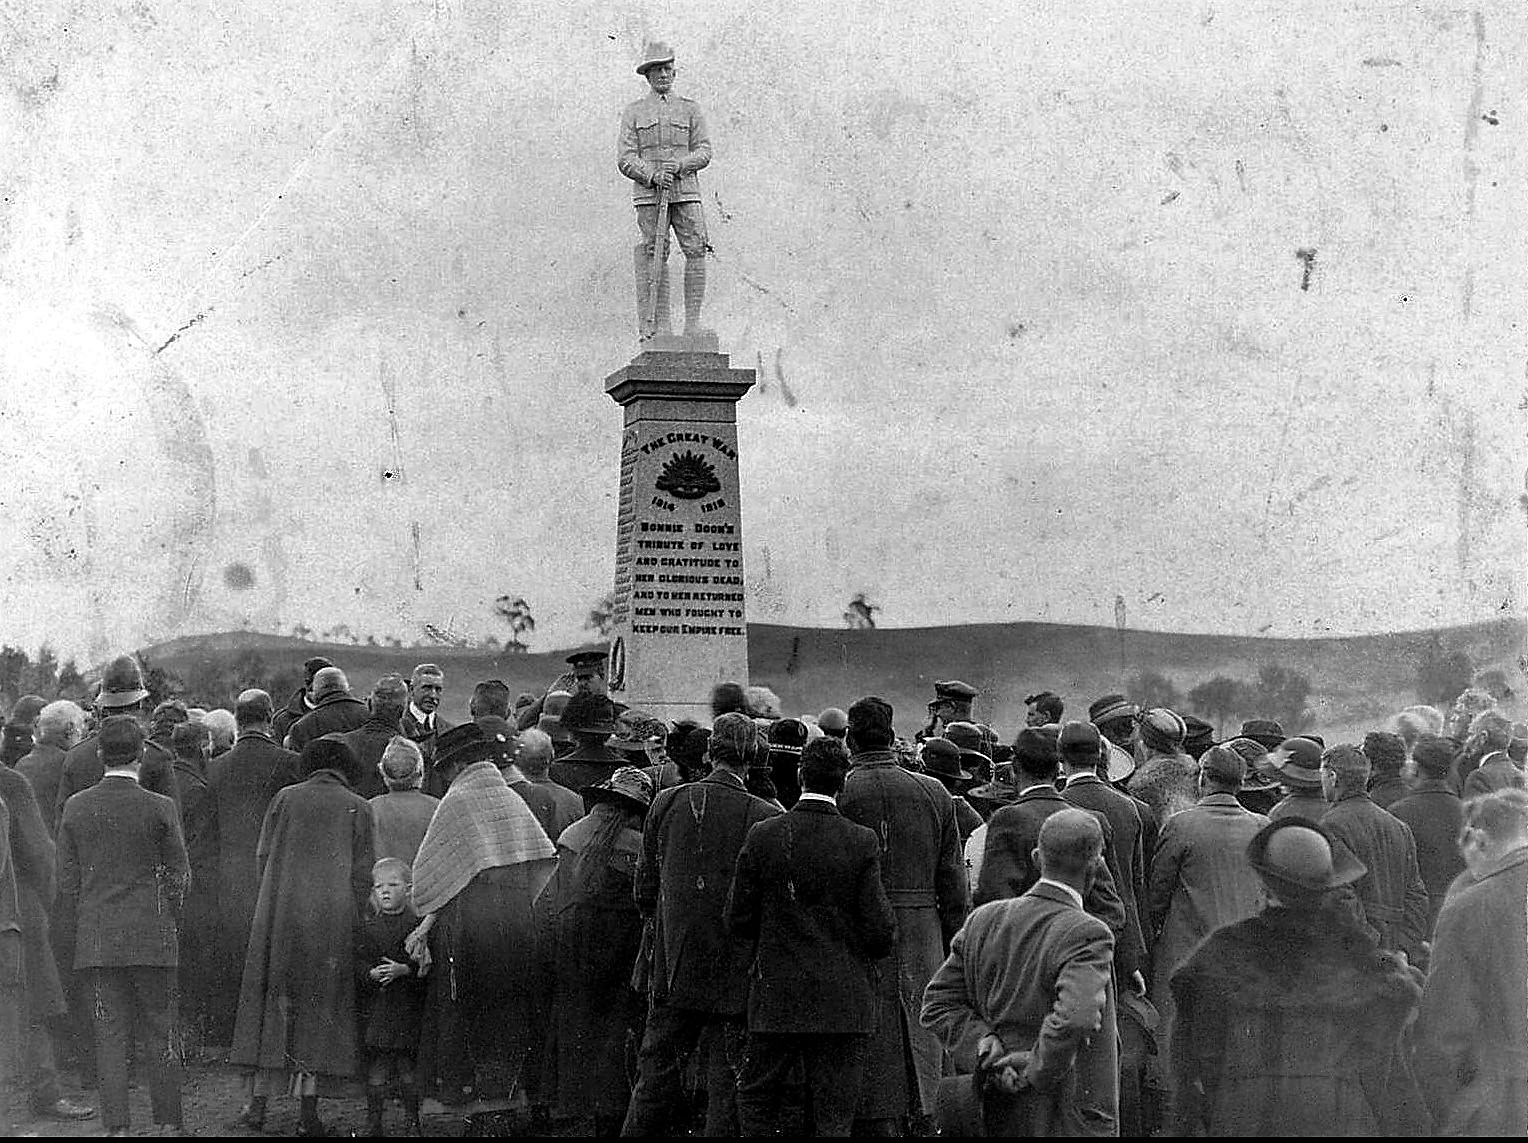 War memorial unveiled 1921